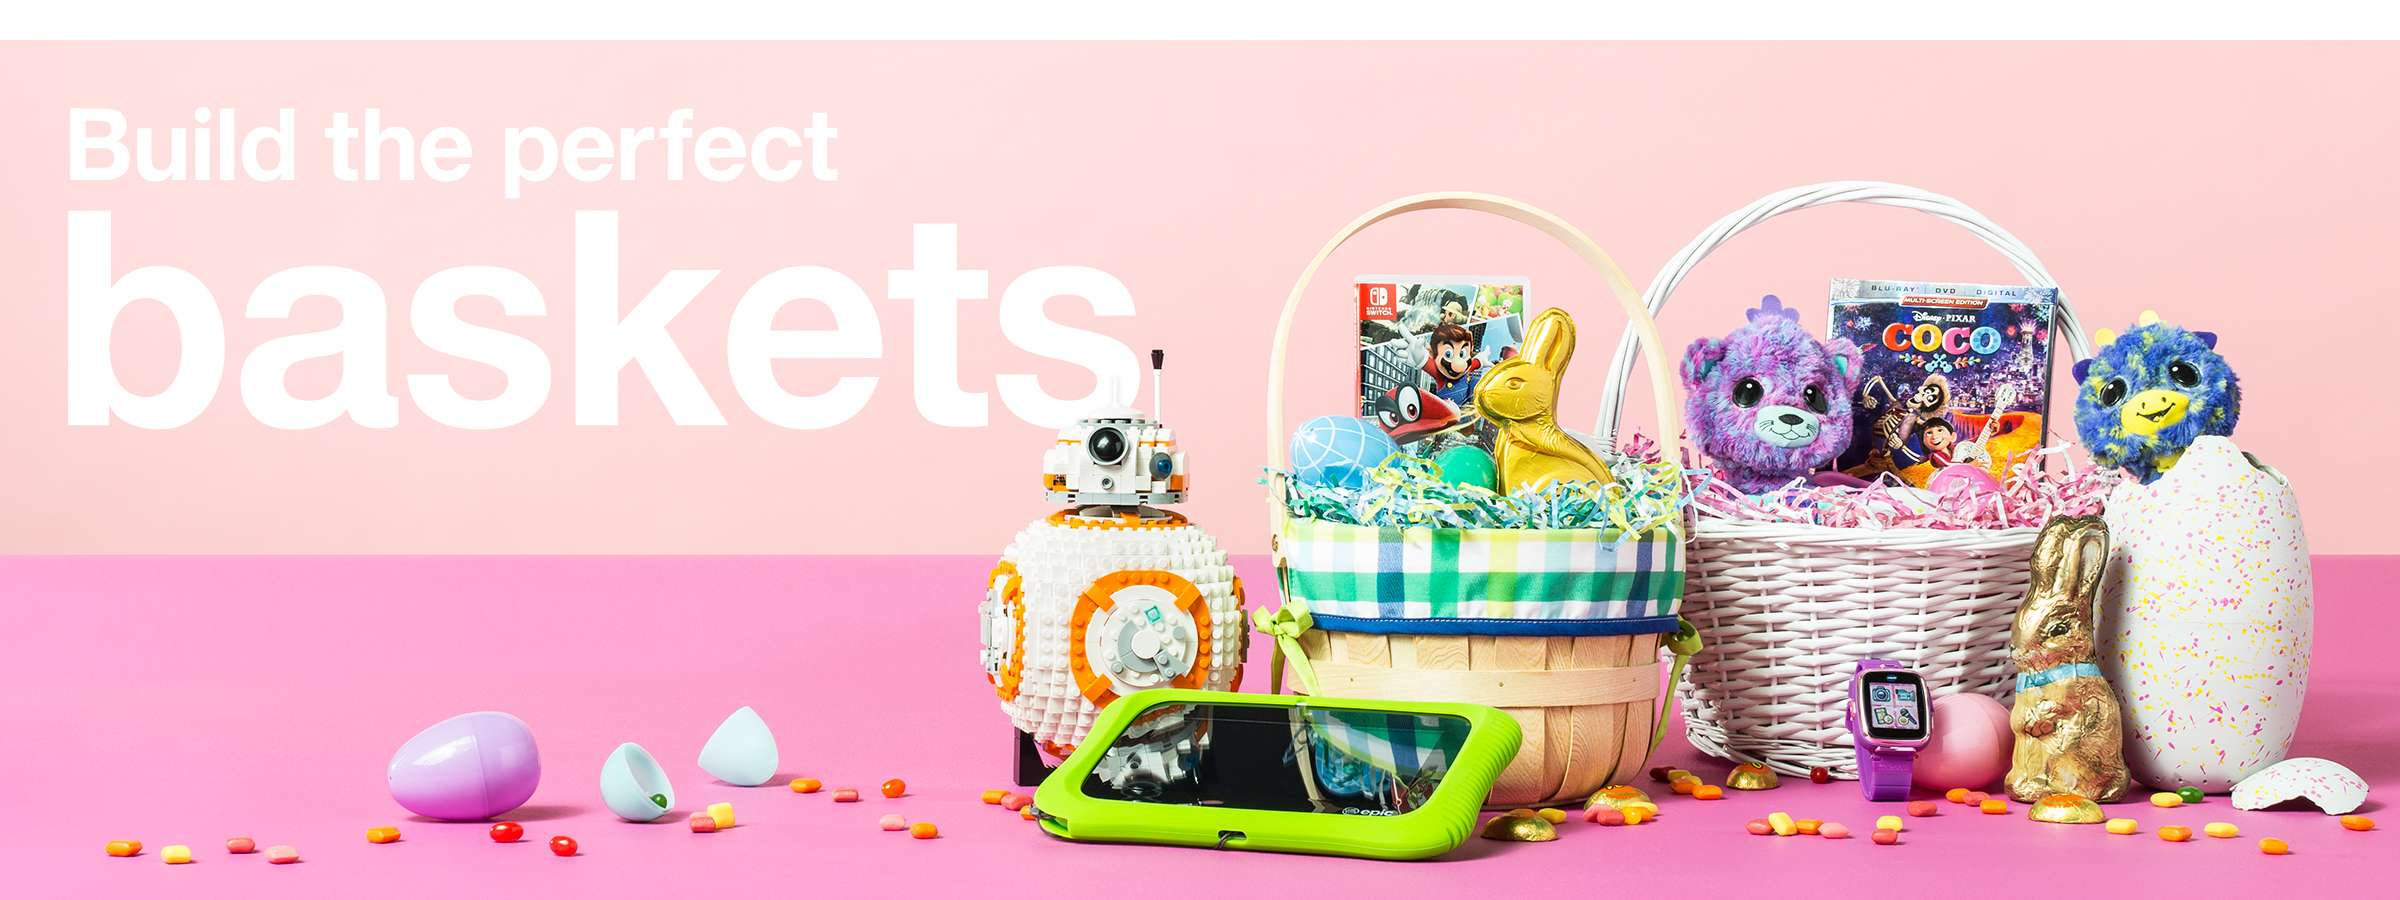 Easter target to build the perfect baskets negle Image collections